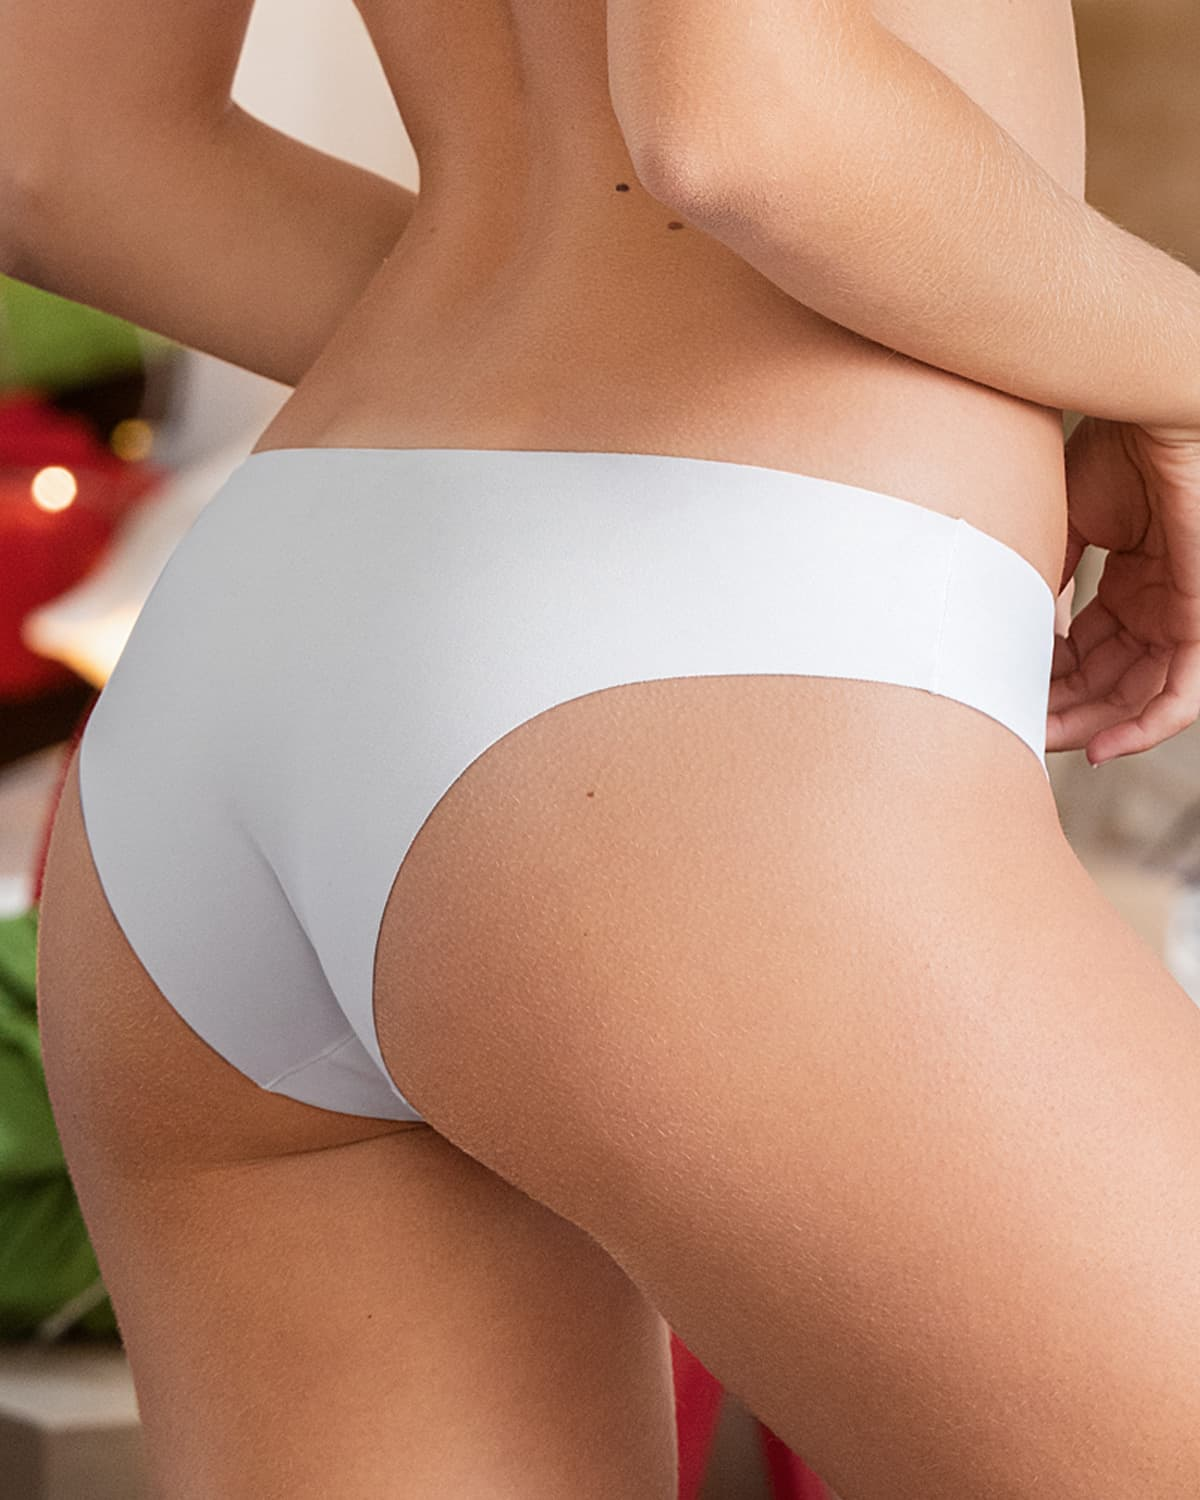 image Which panties is it best to spank you in